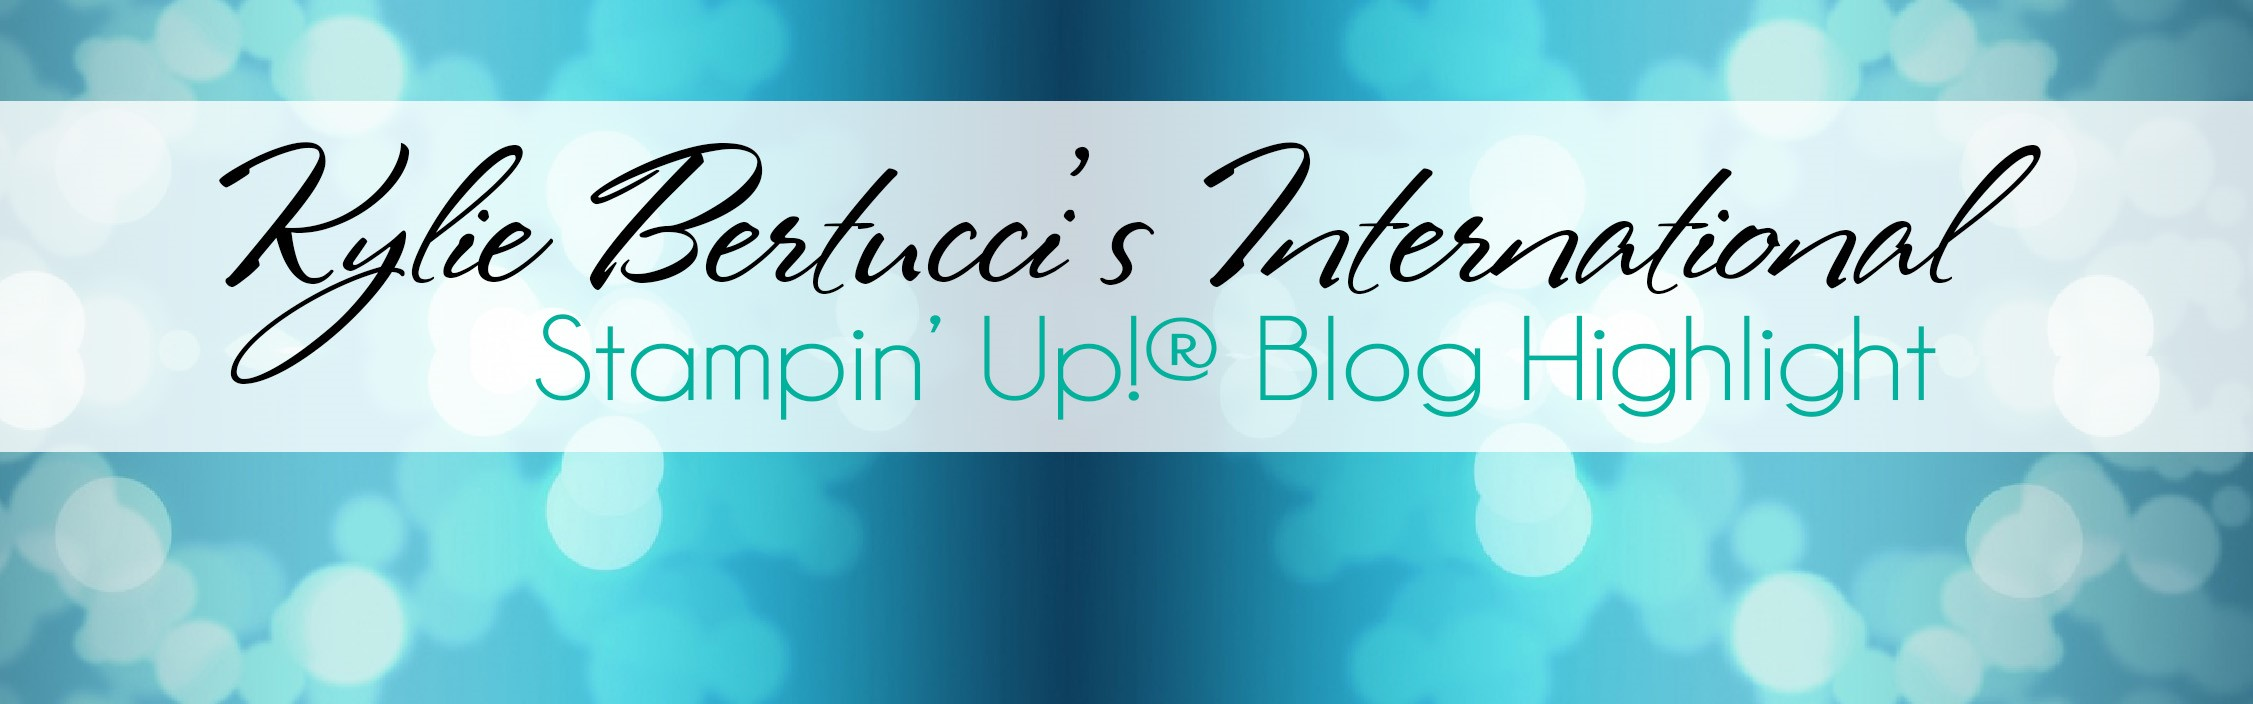 Kylie Bertucci Blog Highlight